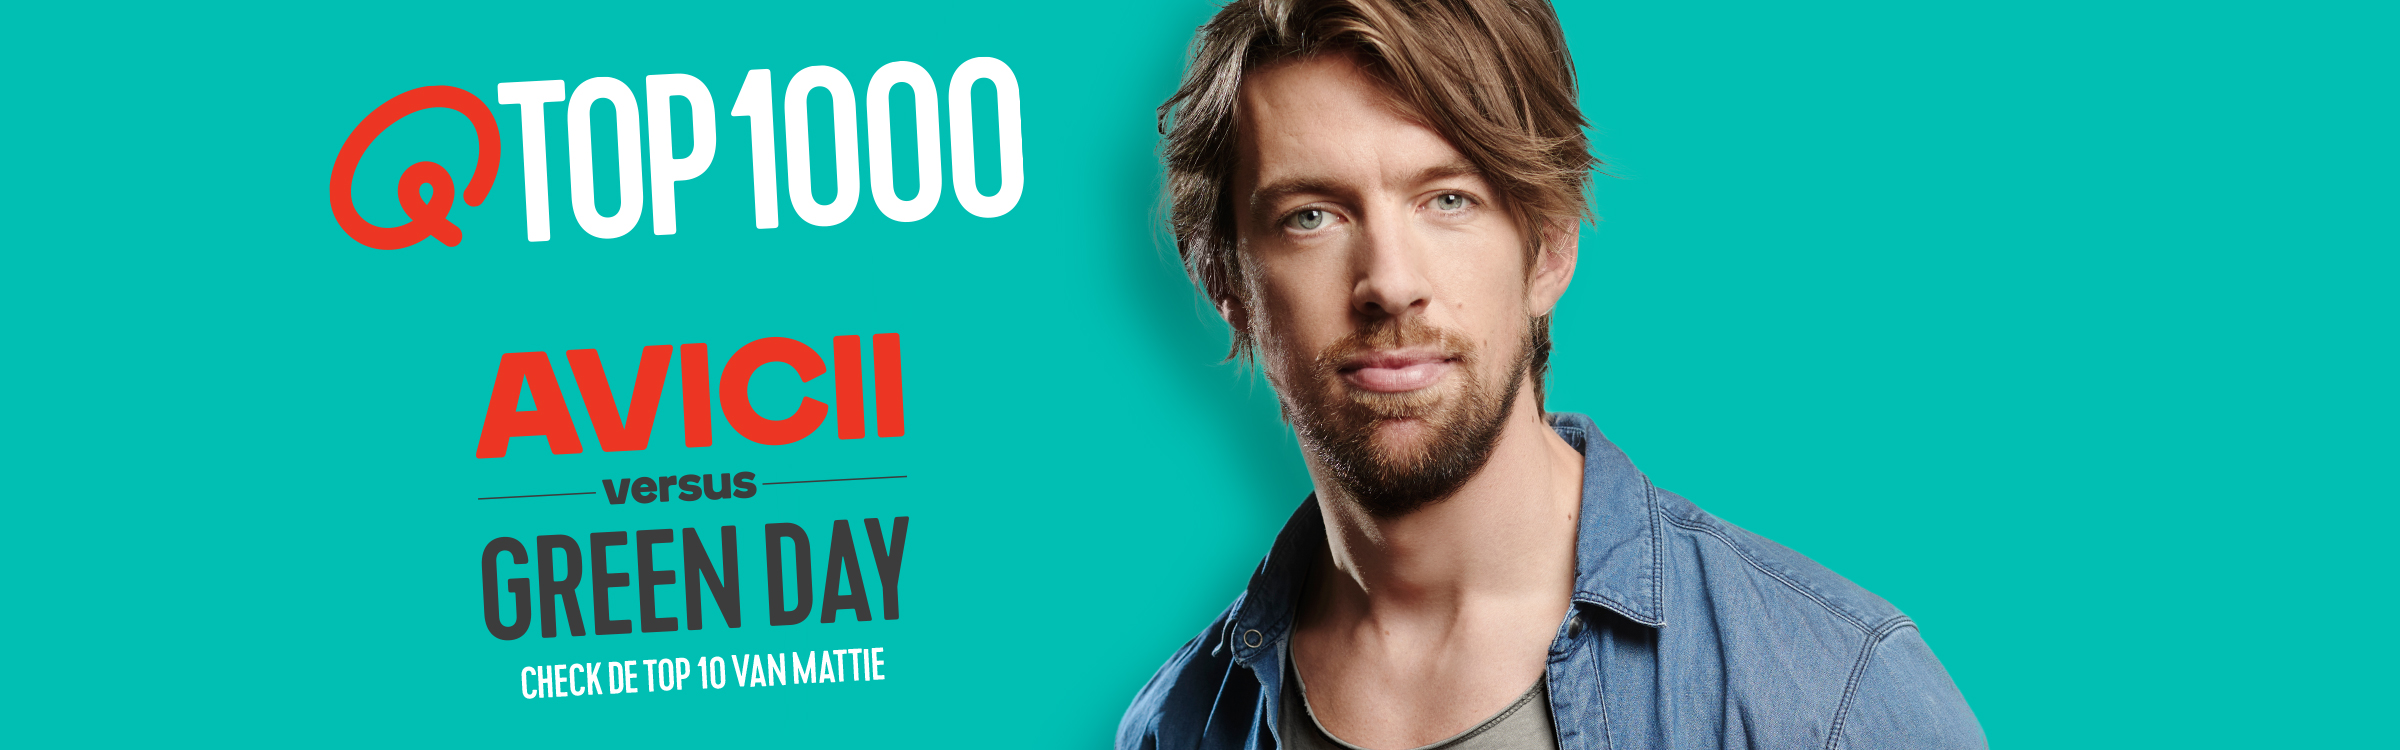 Qmusic actionheader top1000 djs mattie